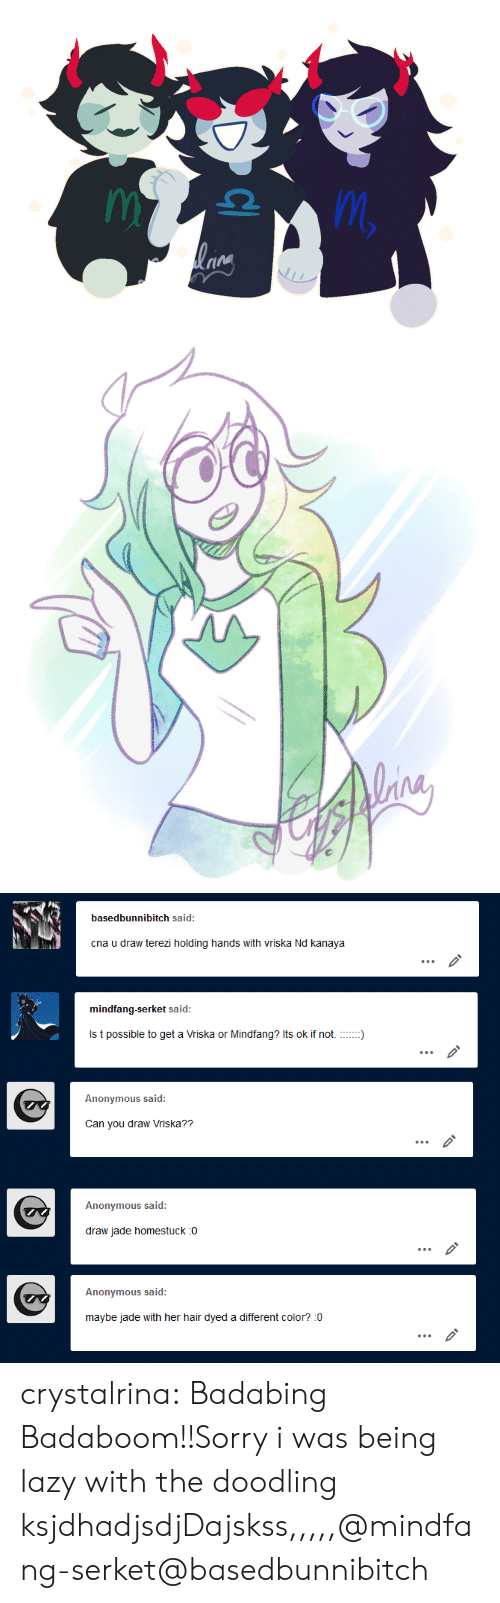 Lazy, Sorry, and Target: basedbunnibitch said:  cna u draw terezi holding hands with vriska Nd kanaya  mindfang-serket said:  Anonymous said:  Can you draw Vriska??   Anonymous said:  draw jade homestuck :o  Anonymous said:  maybe jade with her hair dyed a different color? :0 crystalrina:  Badabing Badaboom!!Sorry i was being lazy with the doodling ksjdhadjsdjDajskss,,,,,@mindfang-serket@basedbunnibitch